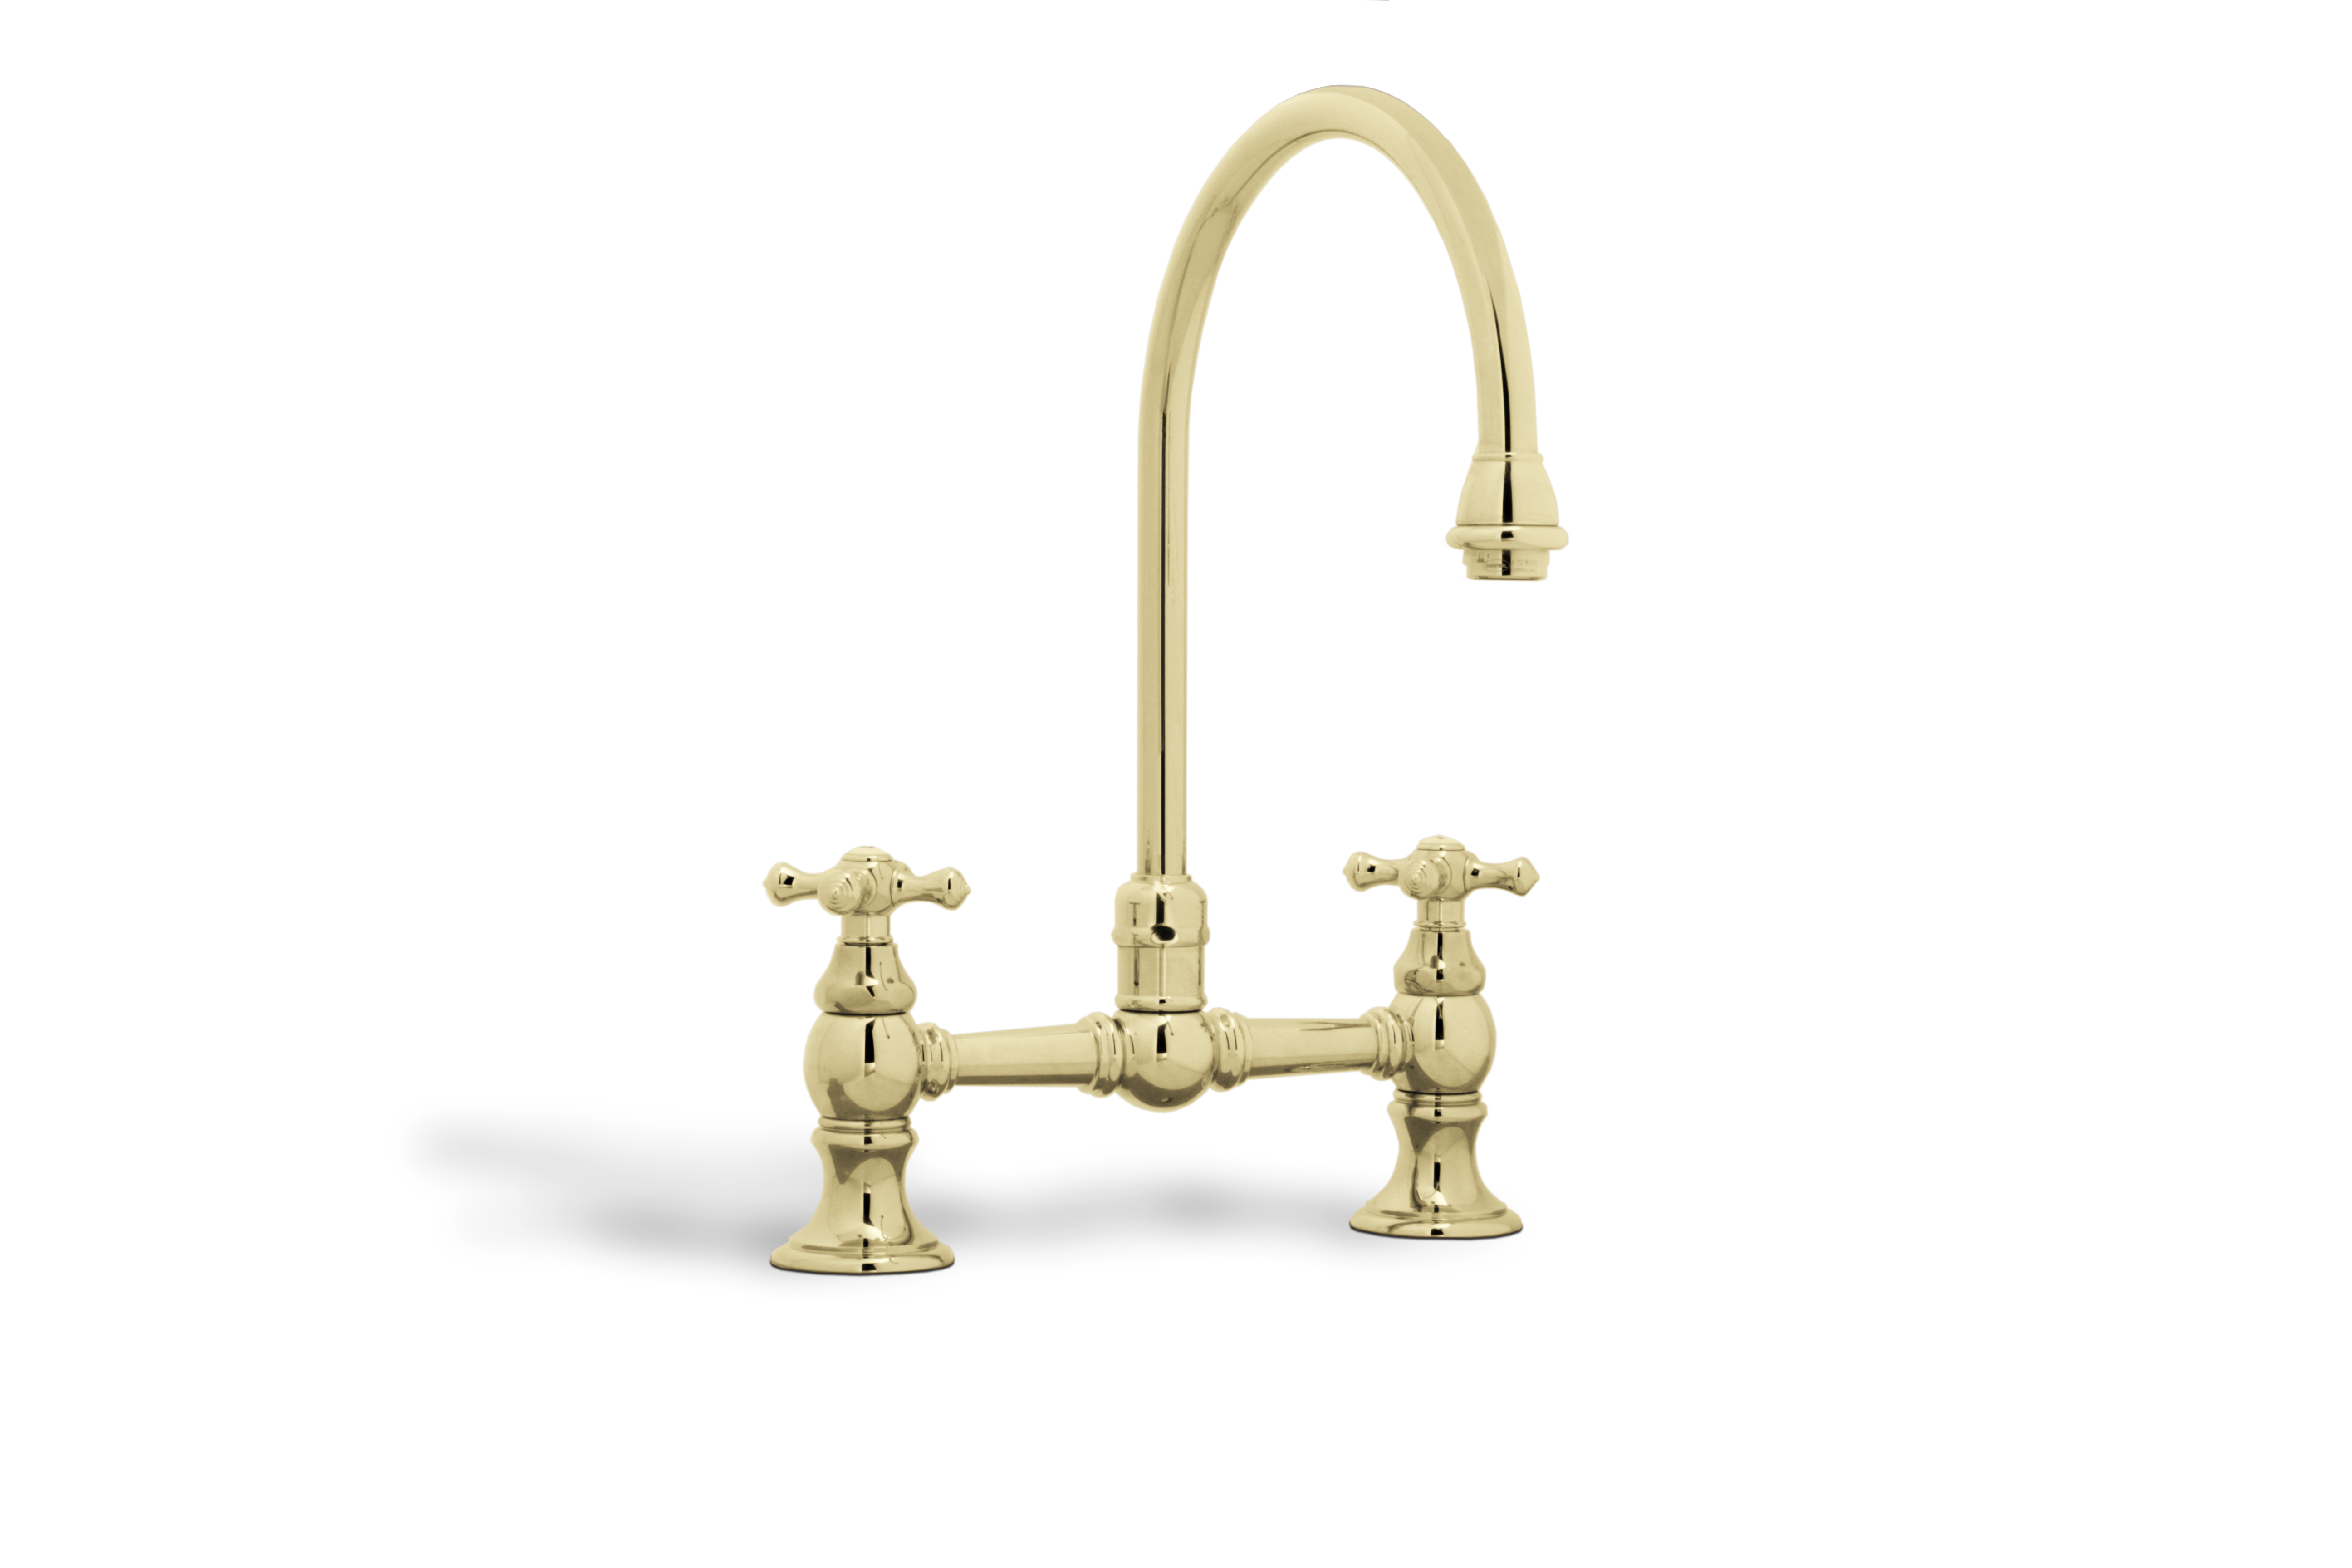 September Edition: Luxury Must-Haves Of The Month September Edition September Edition: Luxury Must-Haves Of The Month victorian two hole mixer tap 1 HR